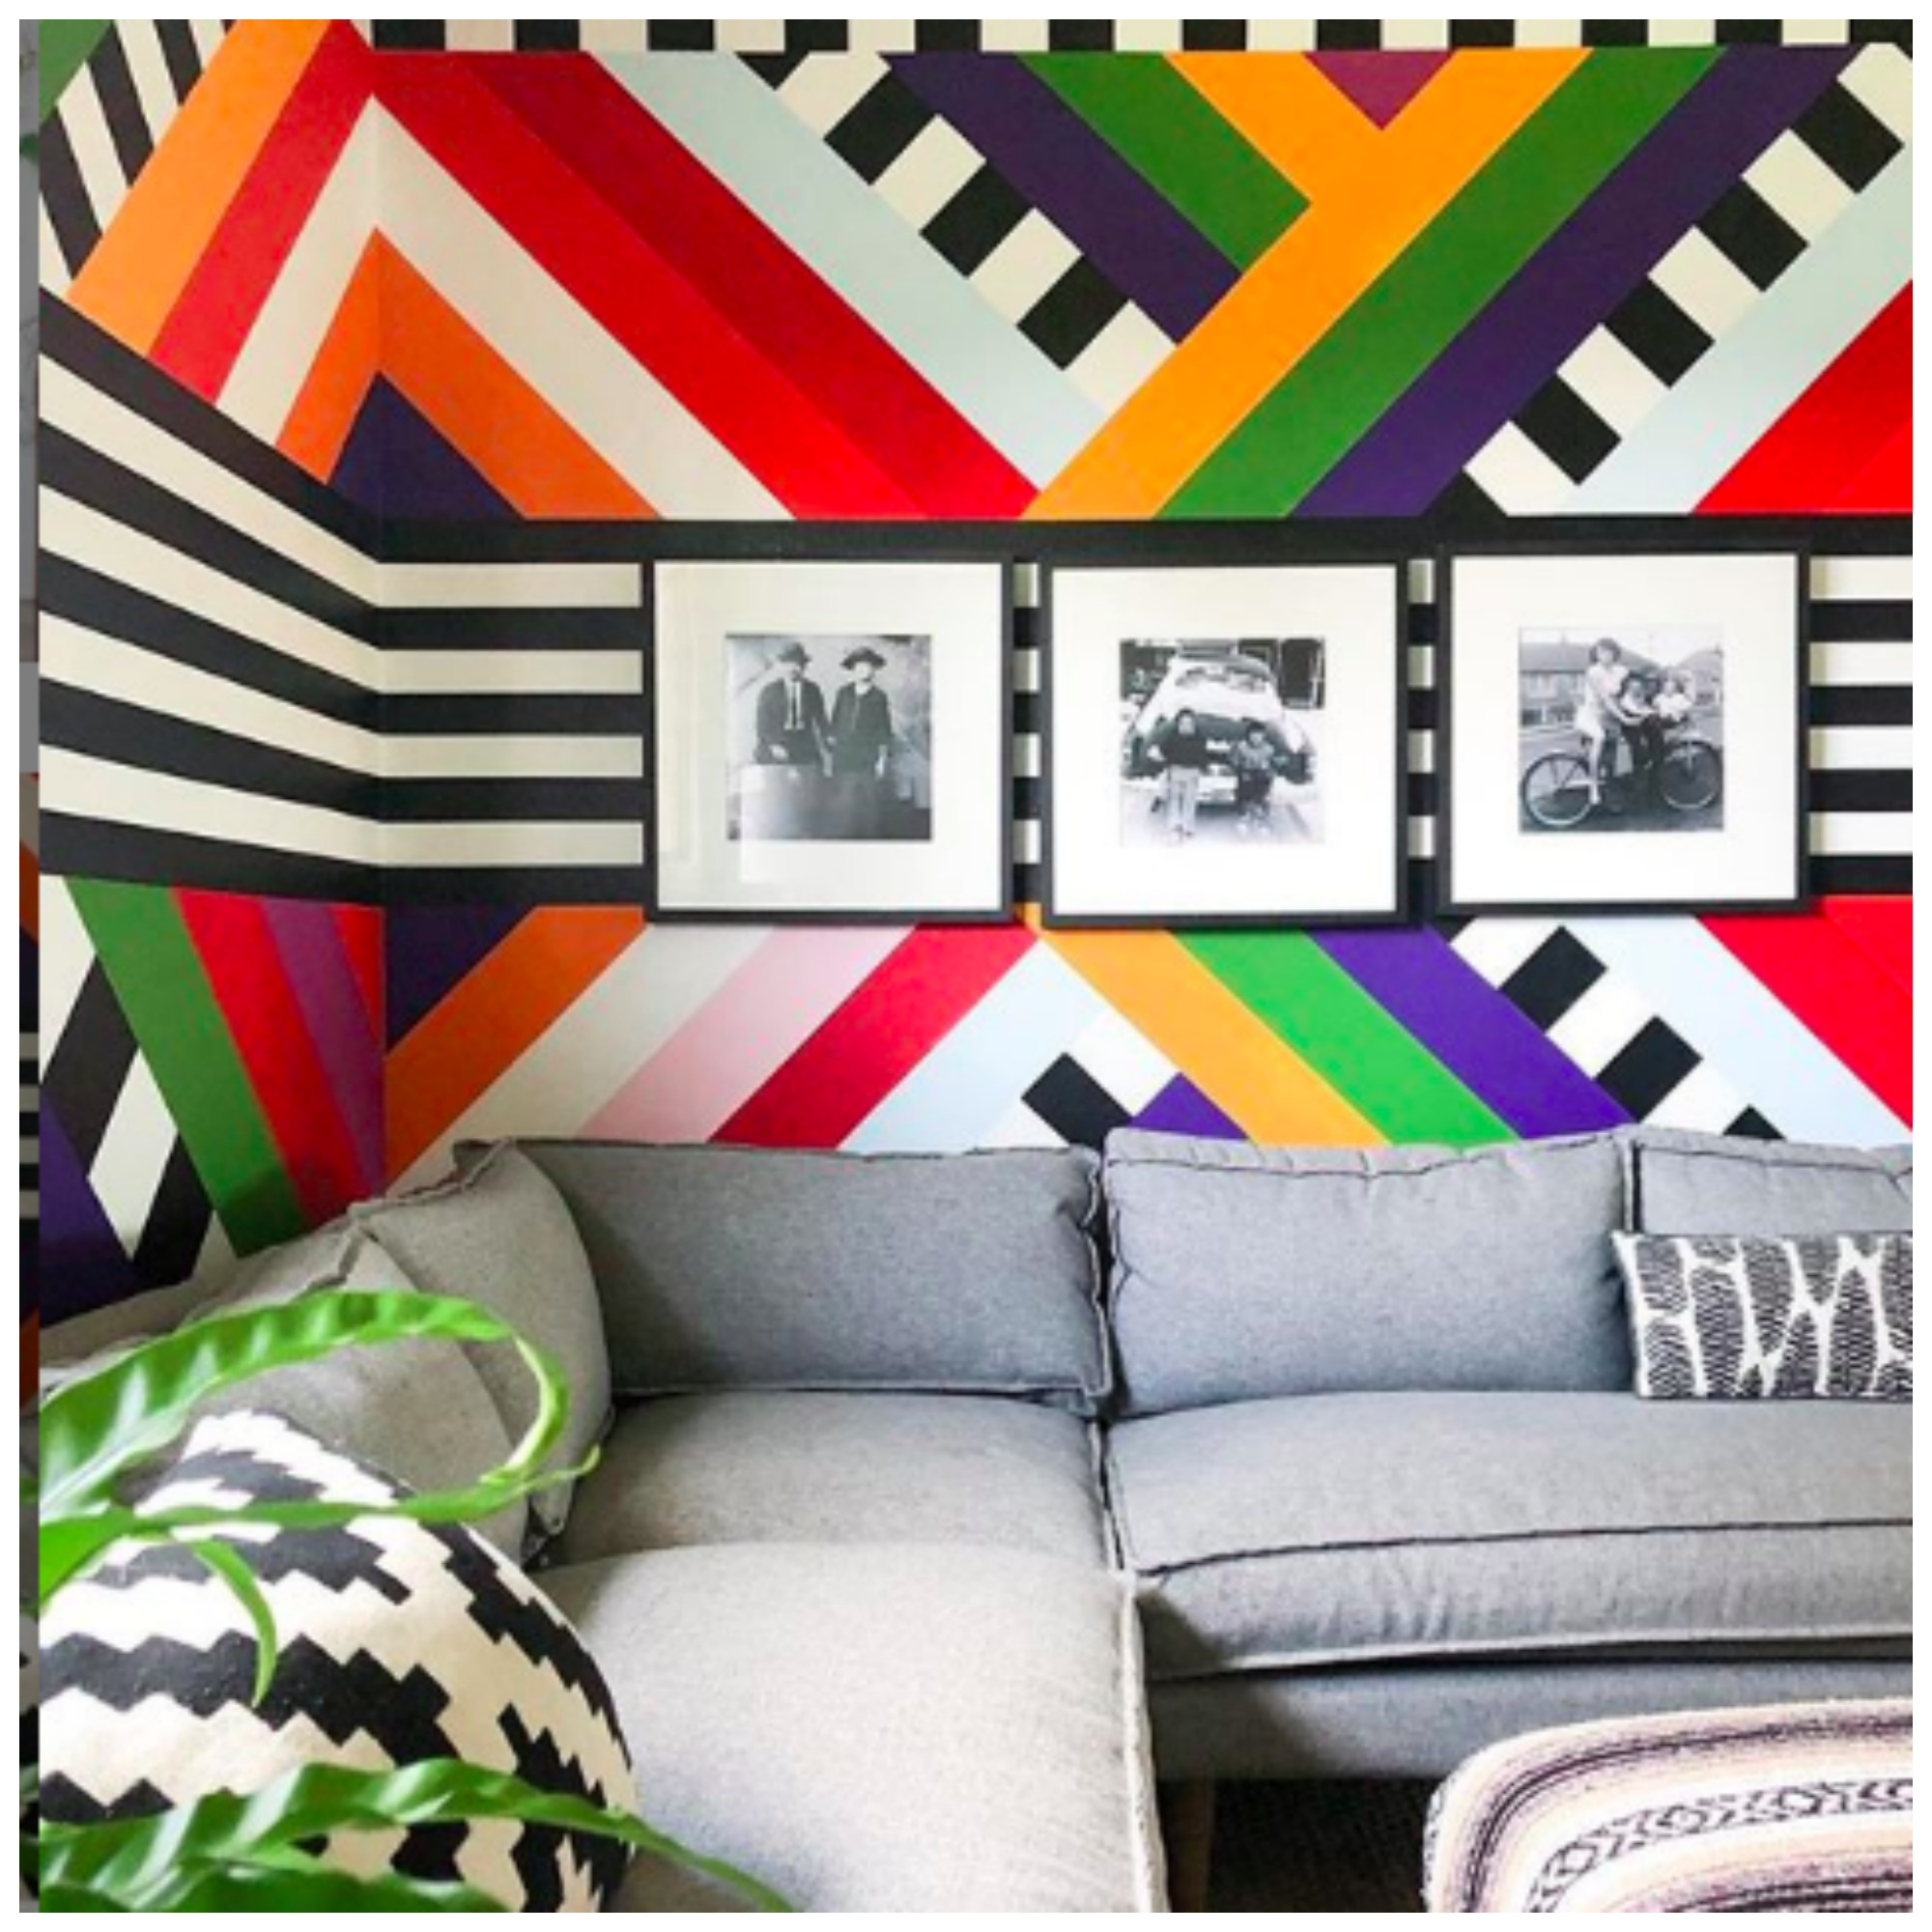 Home Tour: Banyan Bridges, Fun and Funky Unconventional Home Full of Colorful Unique DIY Painted Wall Murals By Racheal Jackson